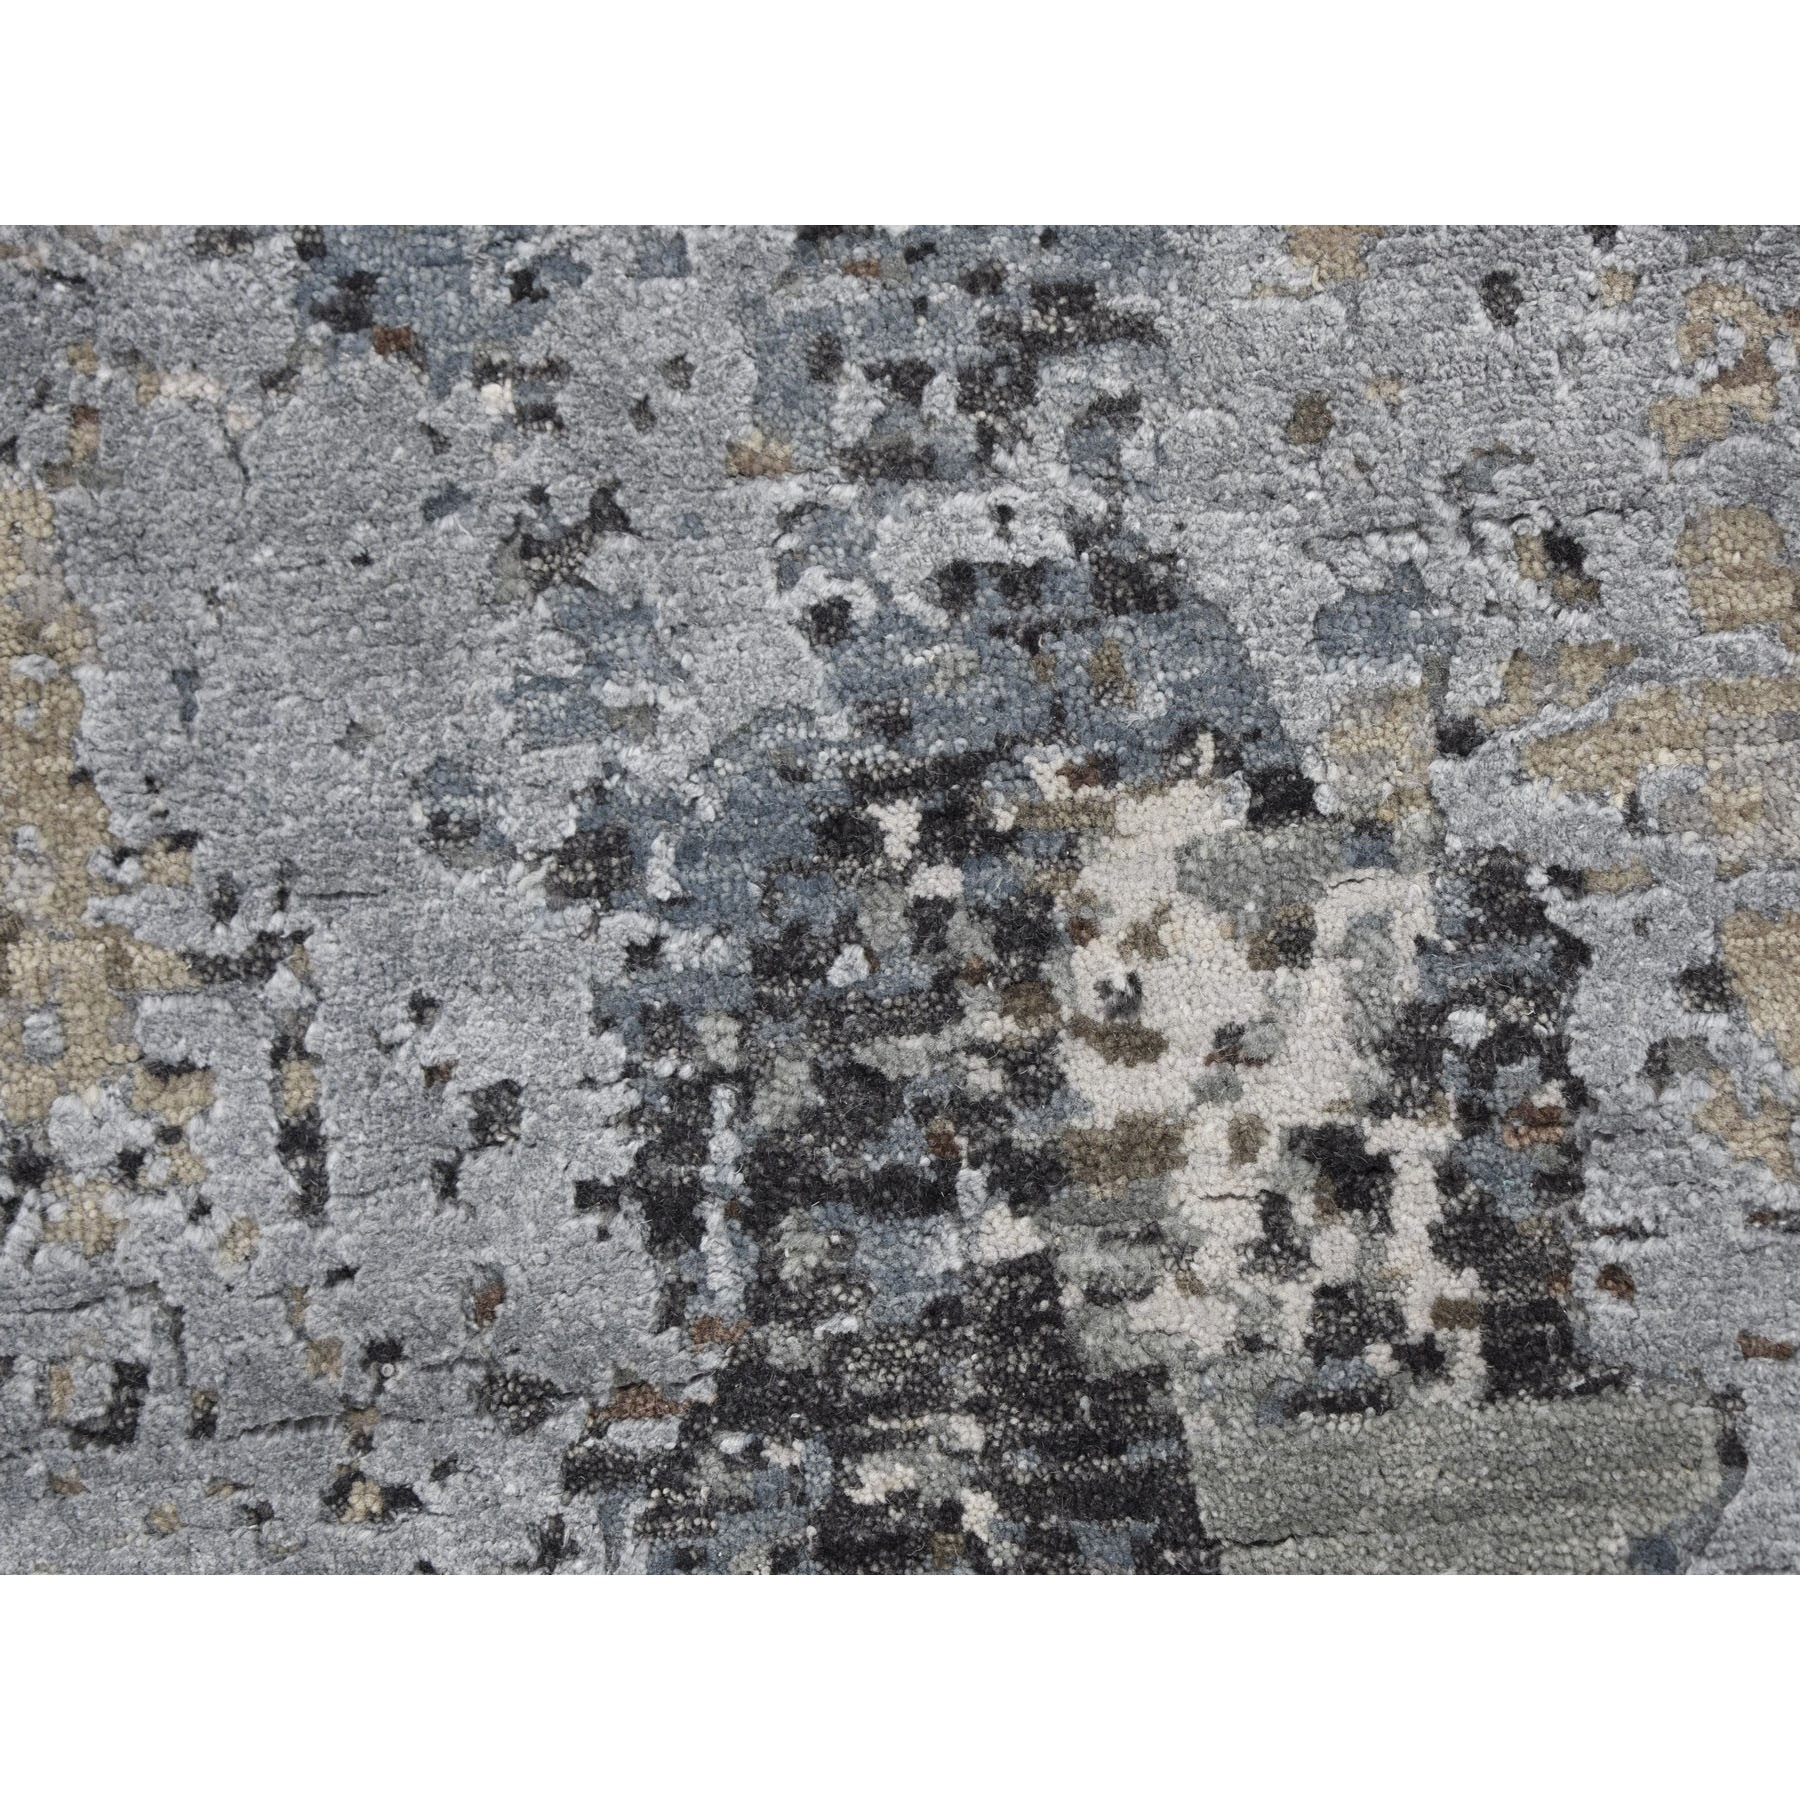 8'x8' Taupe Round Abstract Design Wool And Silk Hi-Low Pile Denser Weave Hand Knotted Oriental Rug